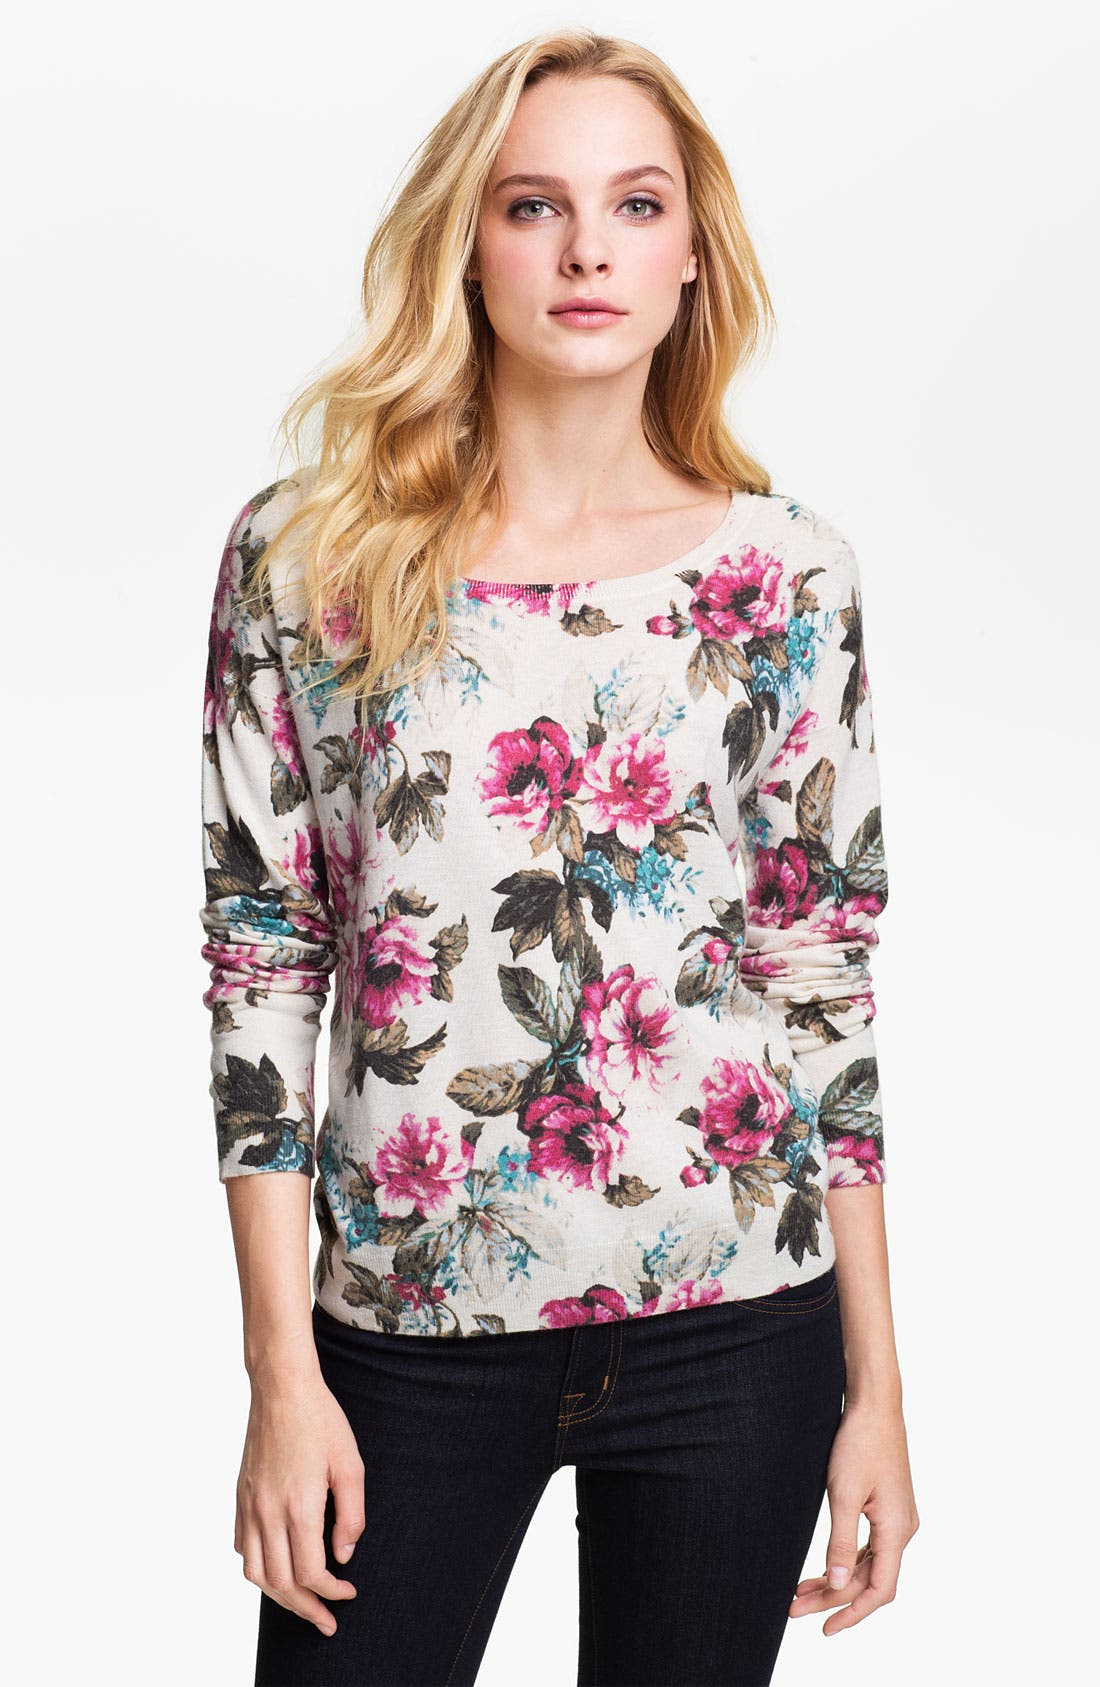 Alternate Image 1 Selected - Joie 'Shelsea' Floral Print Sweater